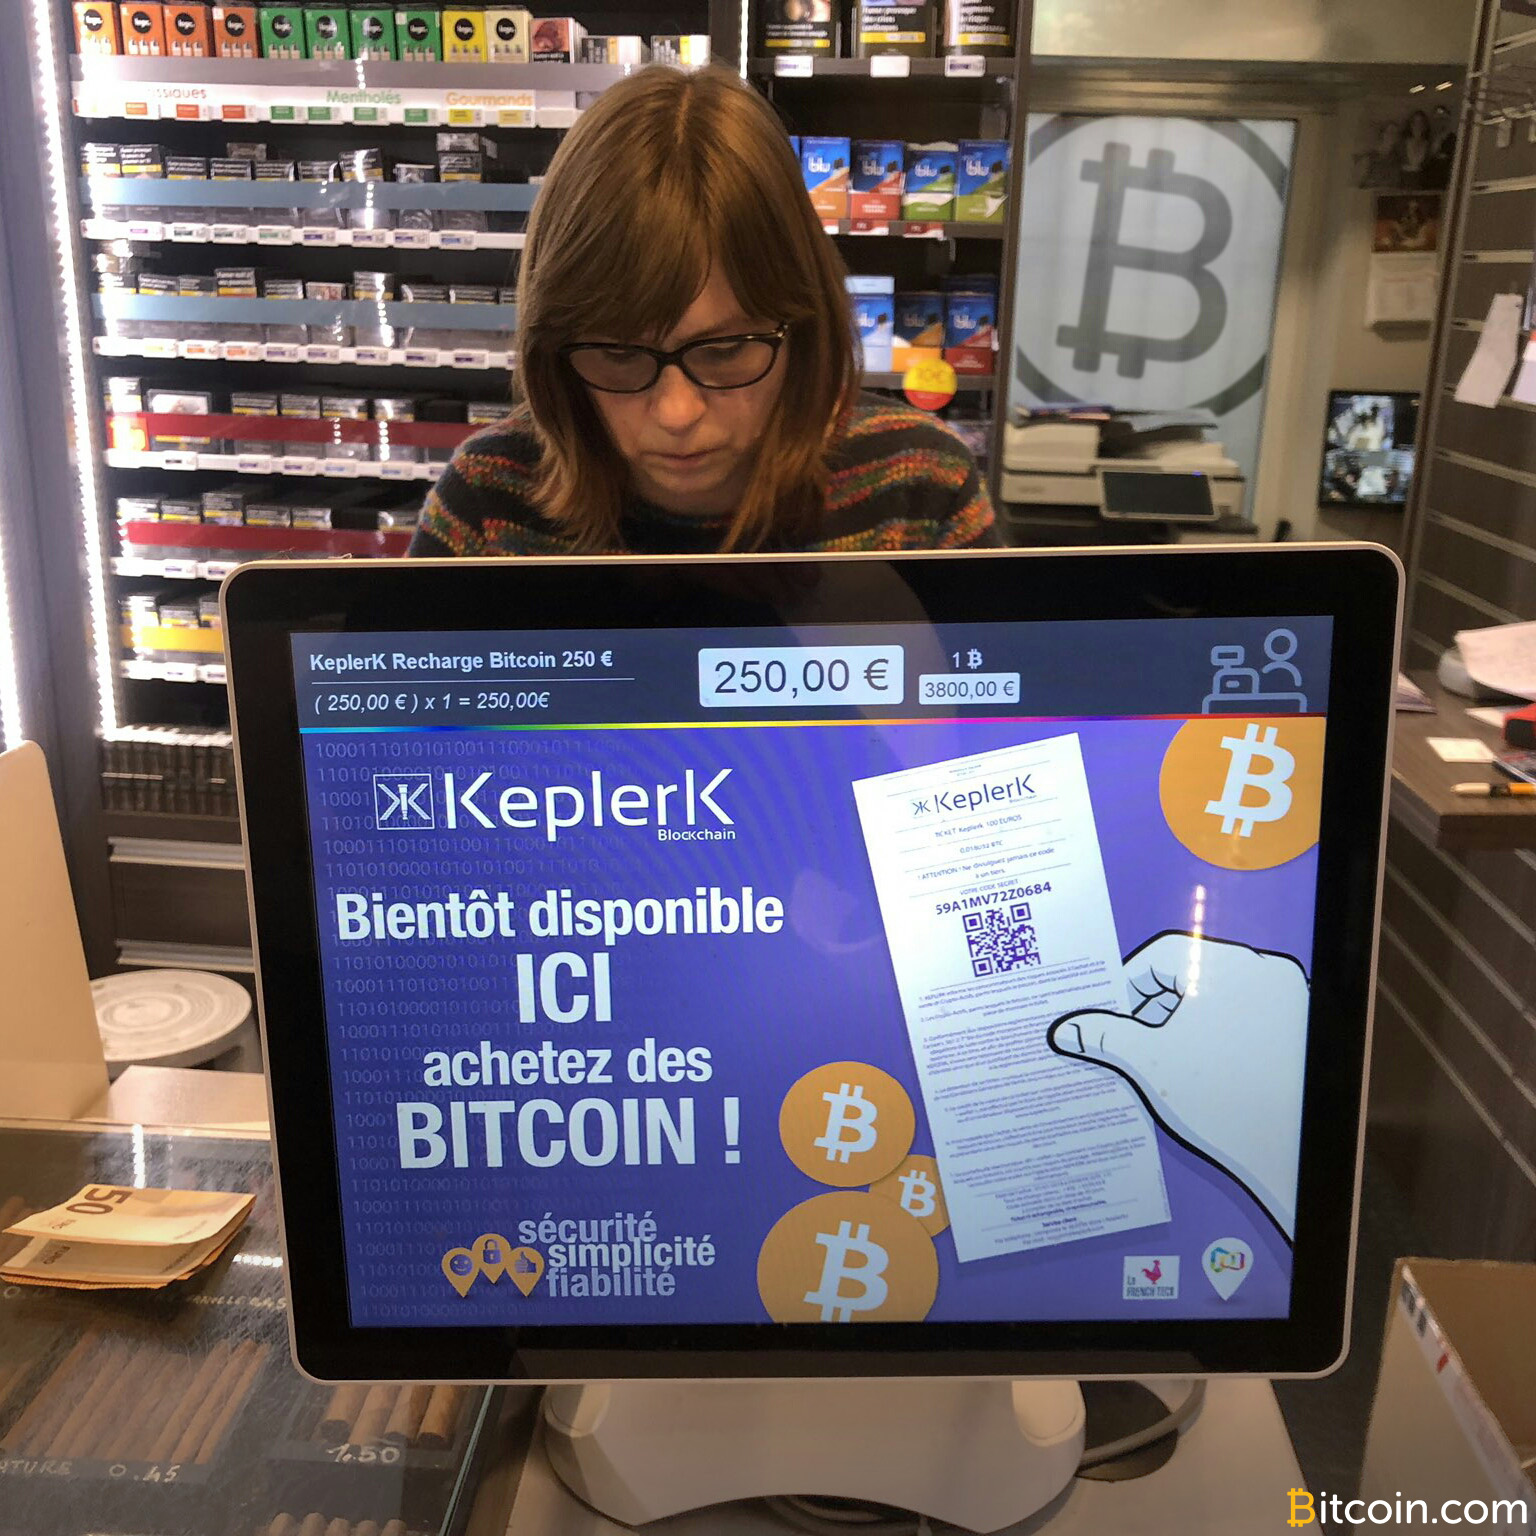 Bitcoin Goes on Sale in 2 French Tobacco Stores